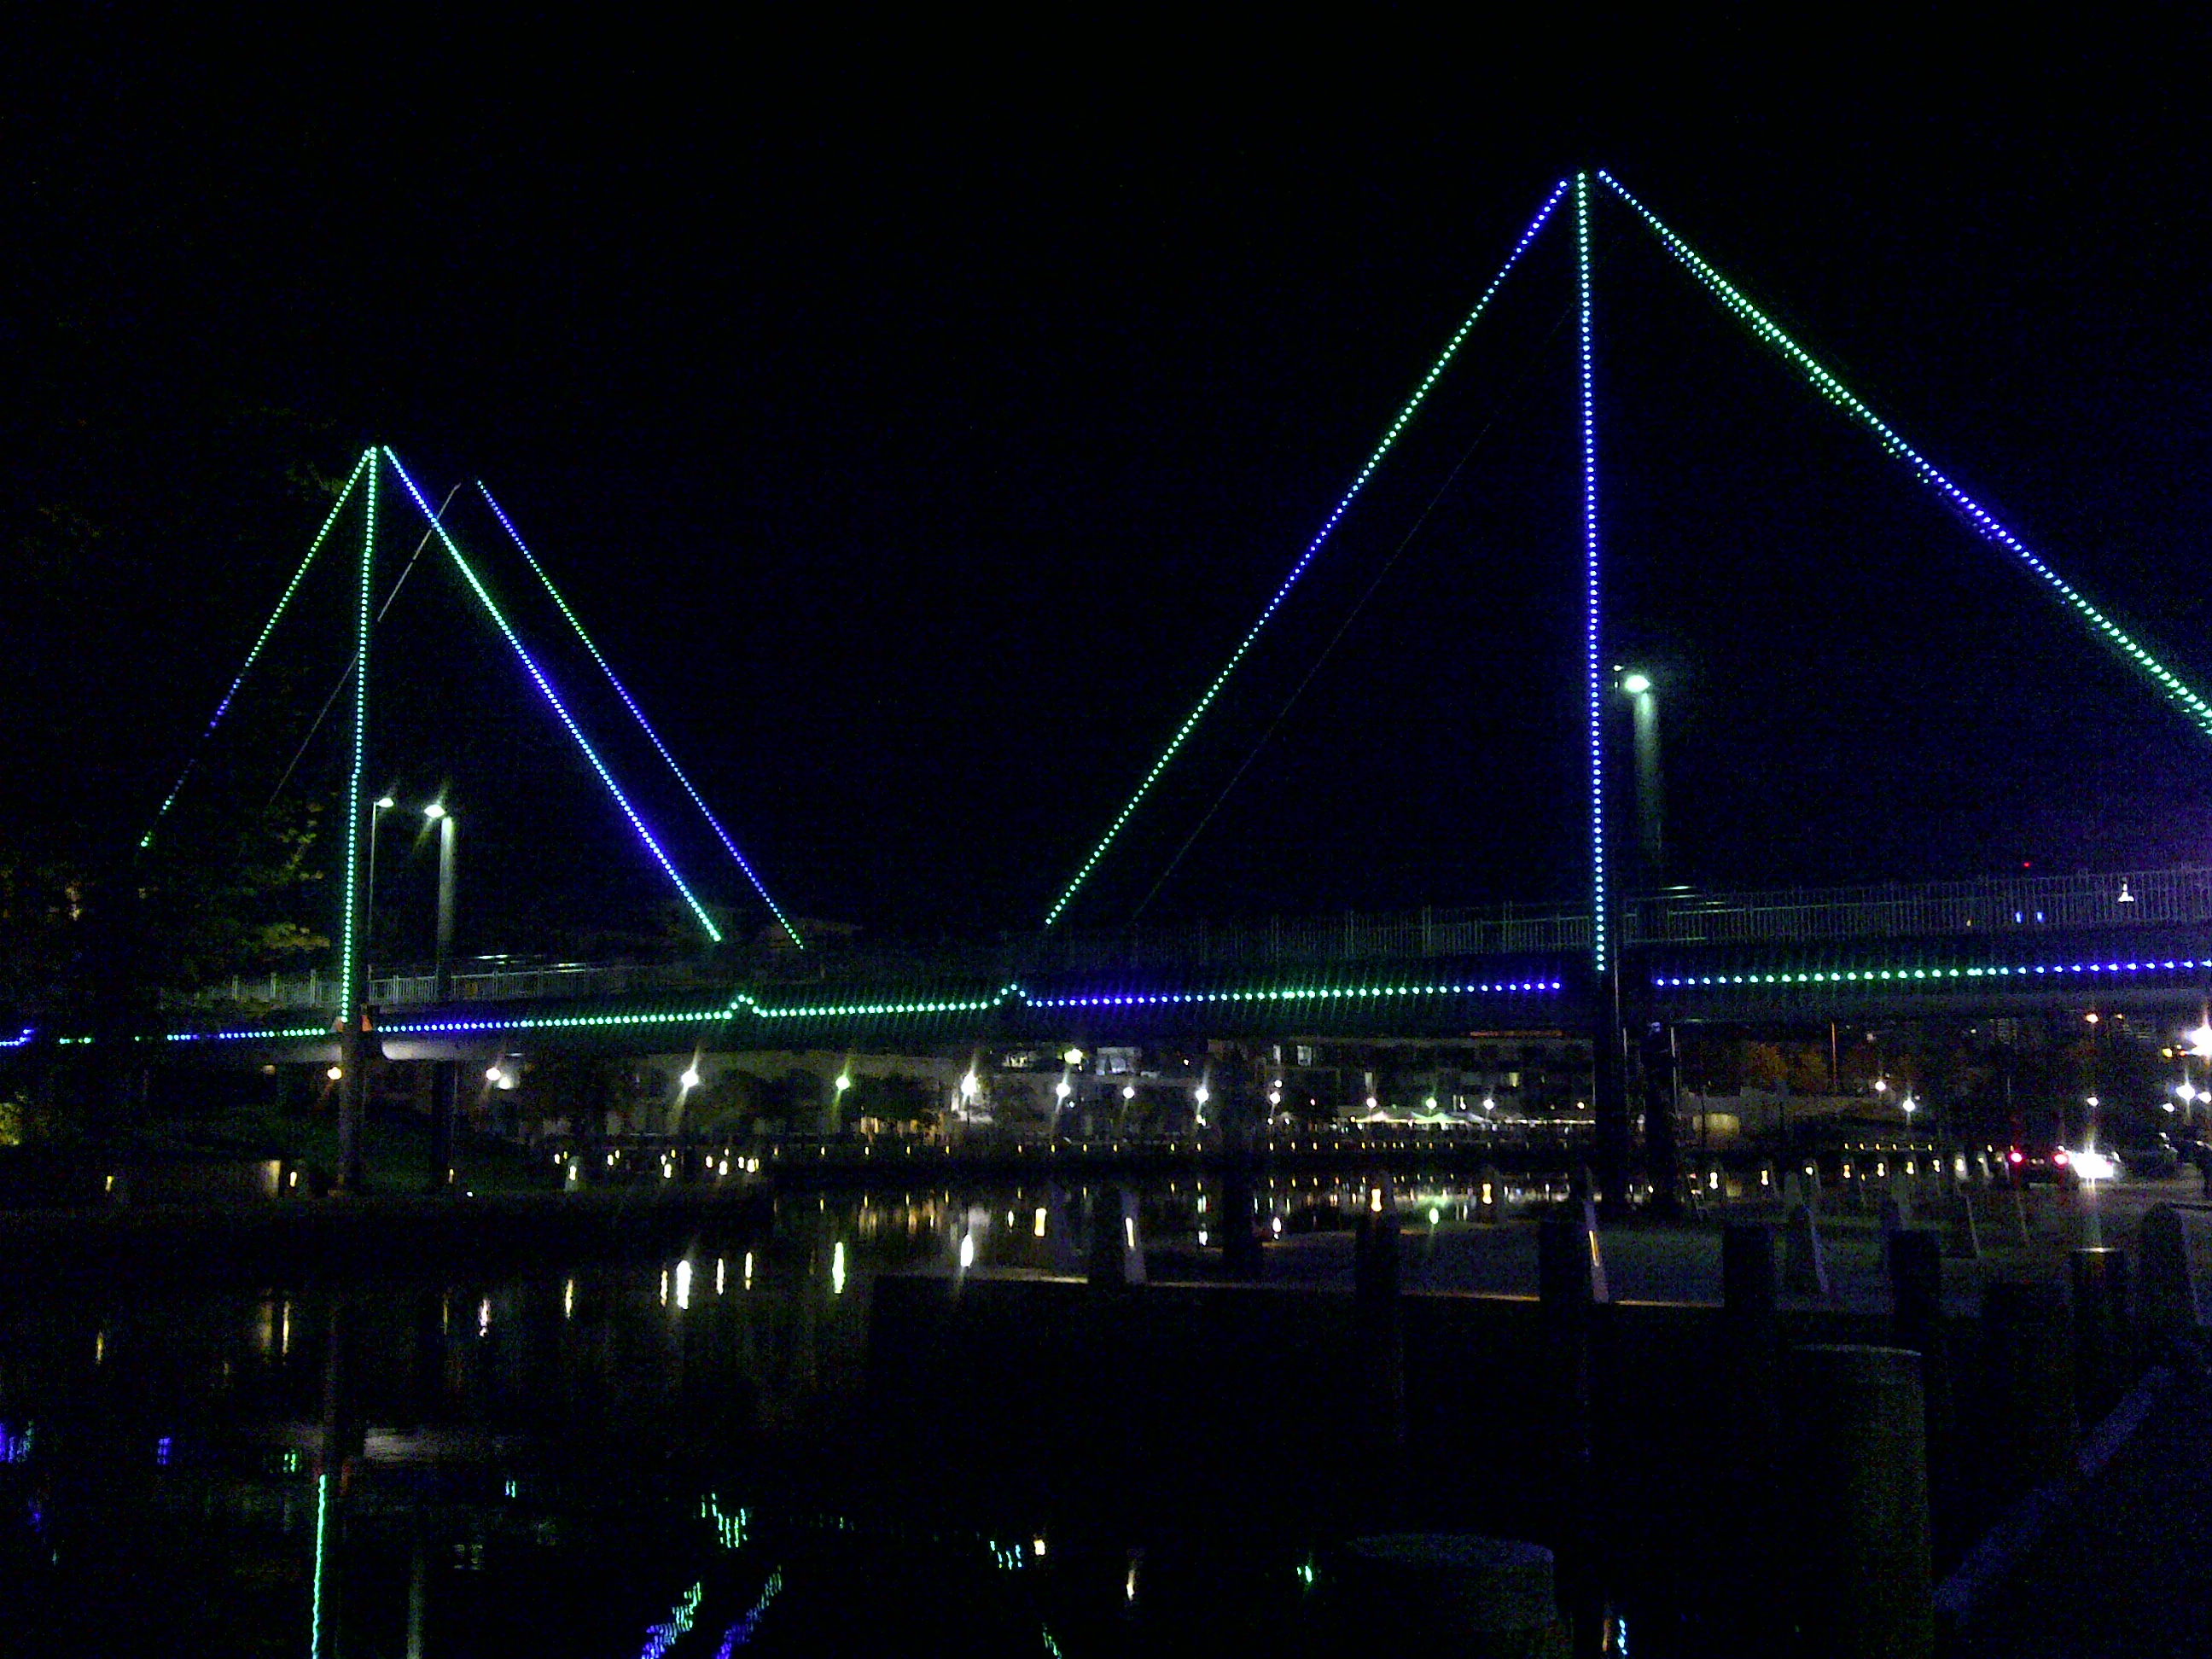 Trafalgar Bridge Lighting Installation - City of Perth